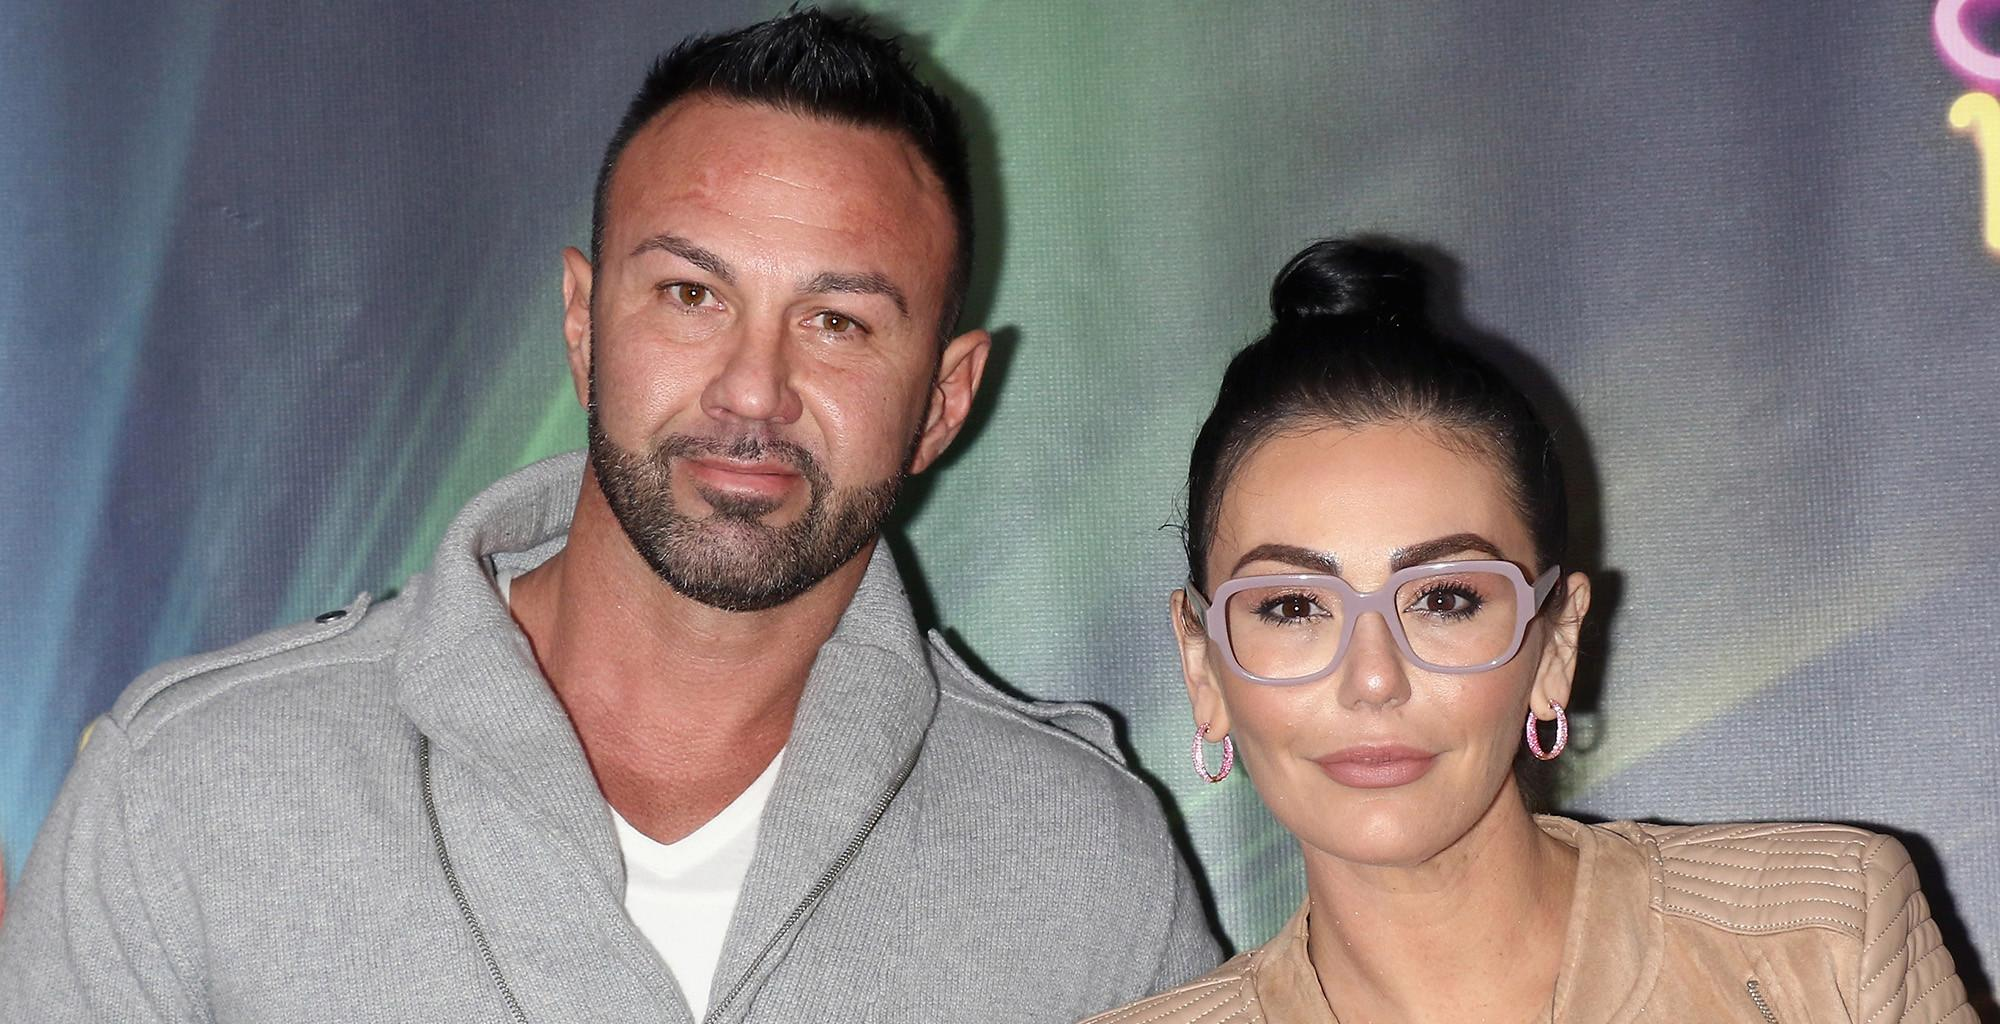 JWoww's Estranged Husband Responds To Her Domestic Violence Accusations - 'You Made Me Look Like A Monster'